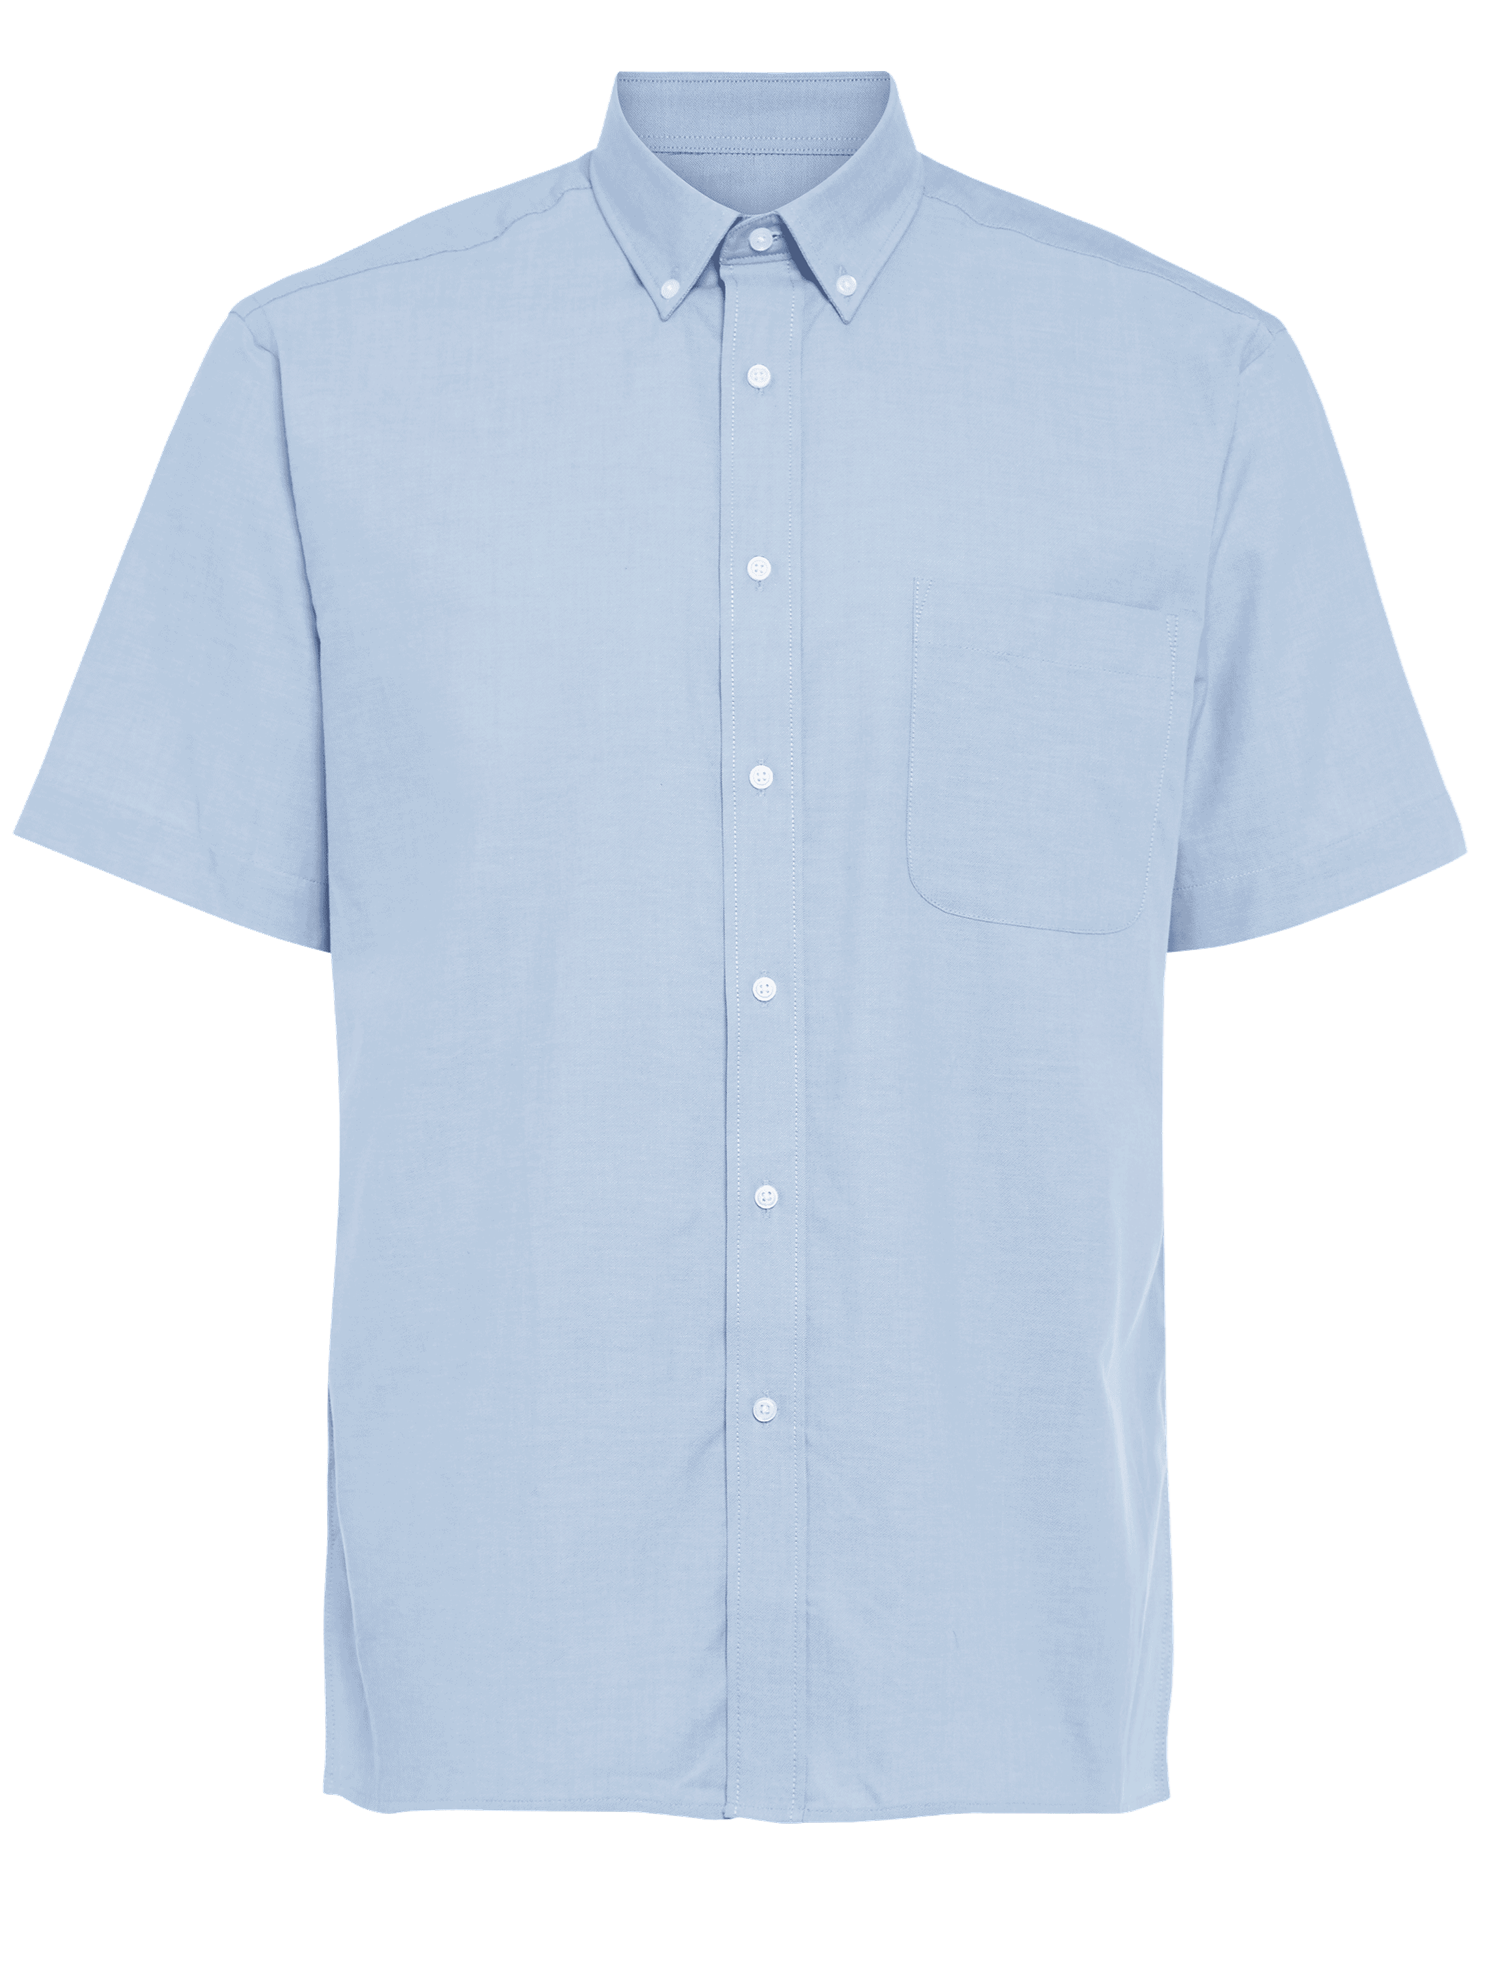 Picture of Short Sleeve Oxford Shirt - Light Blue